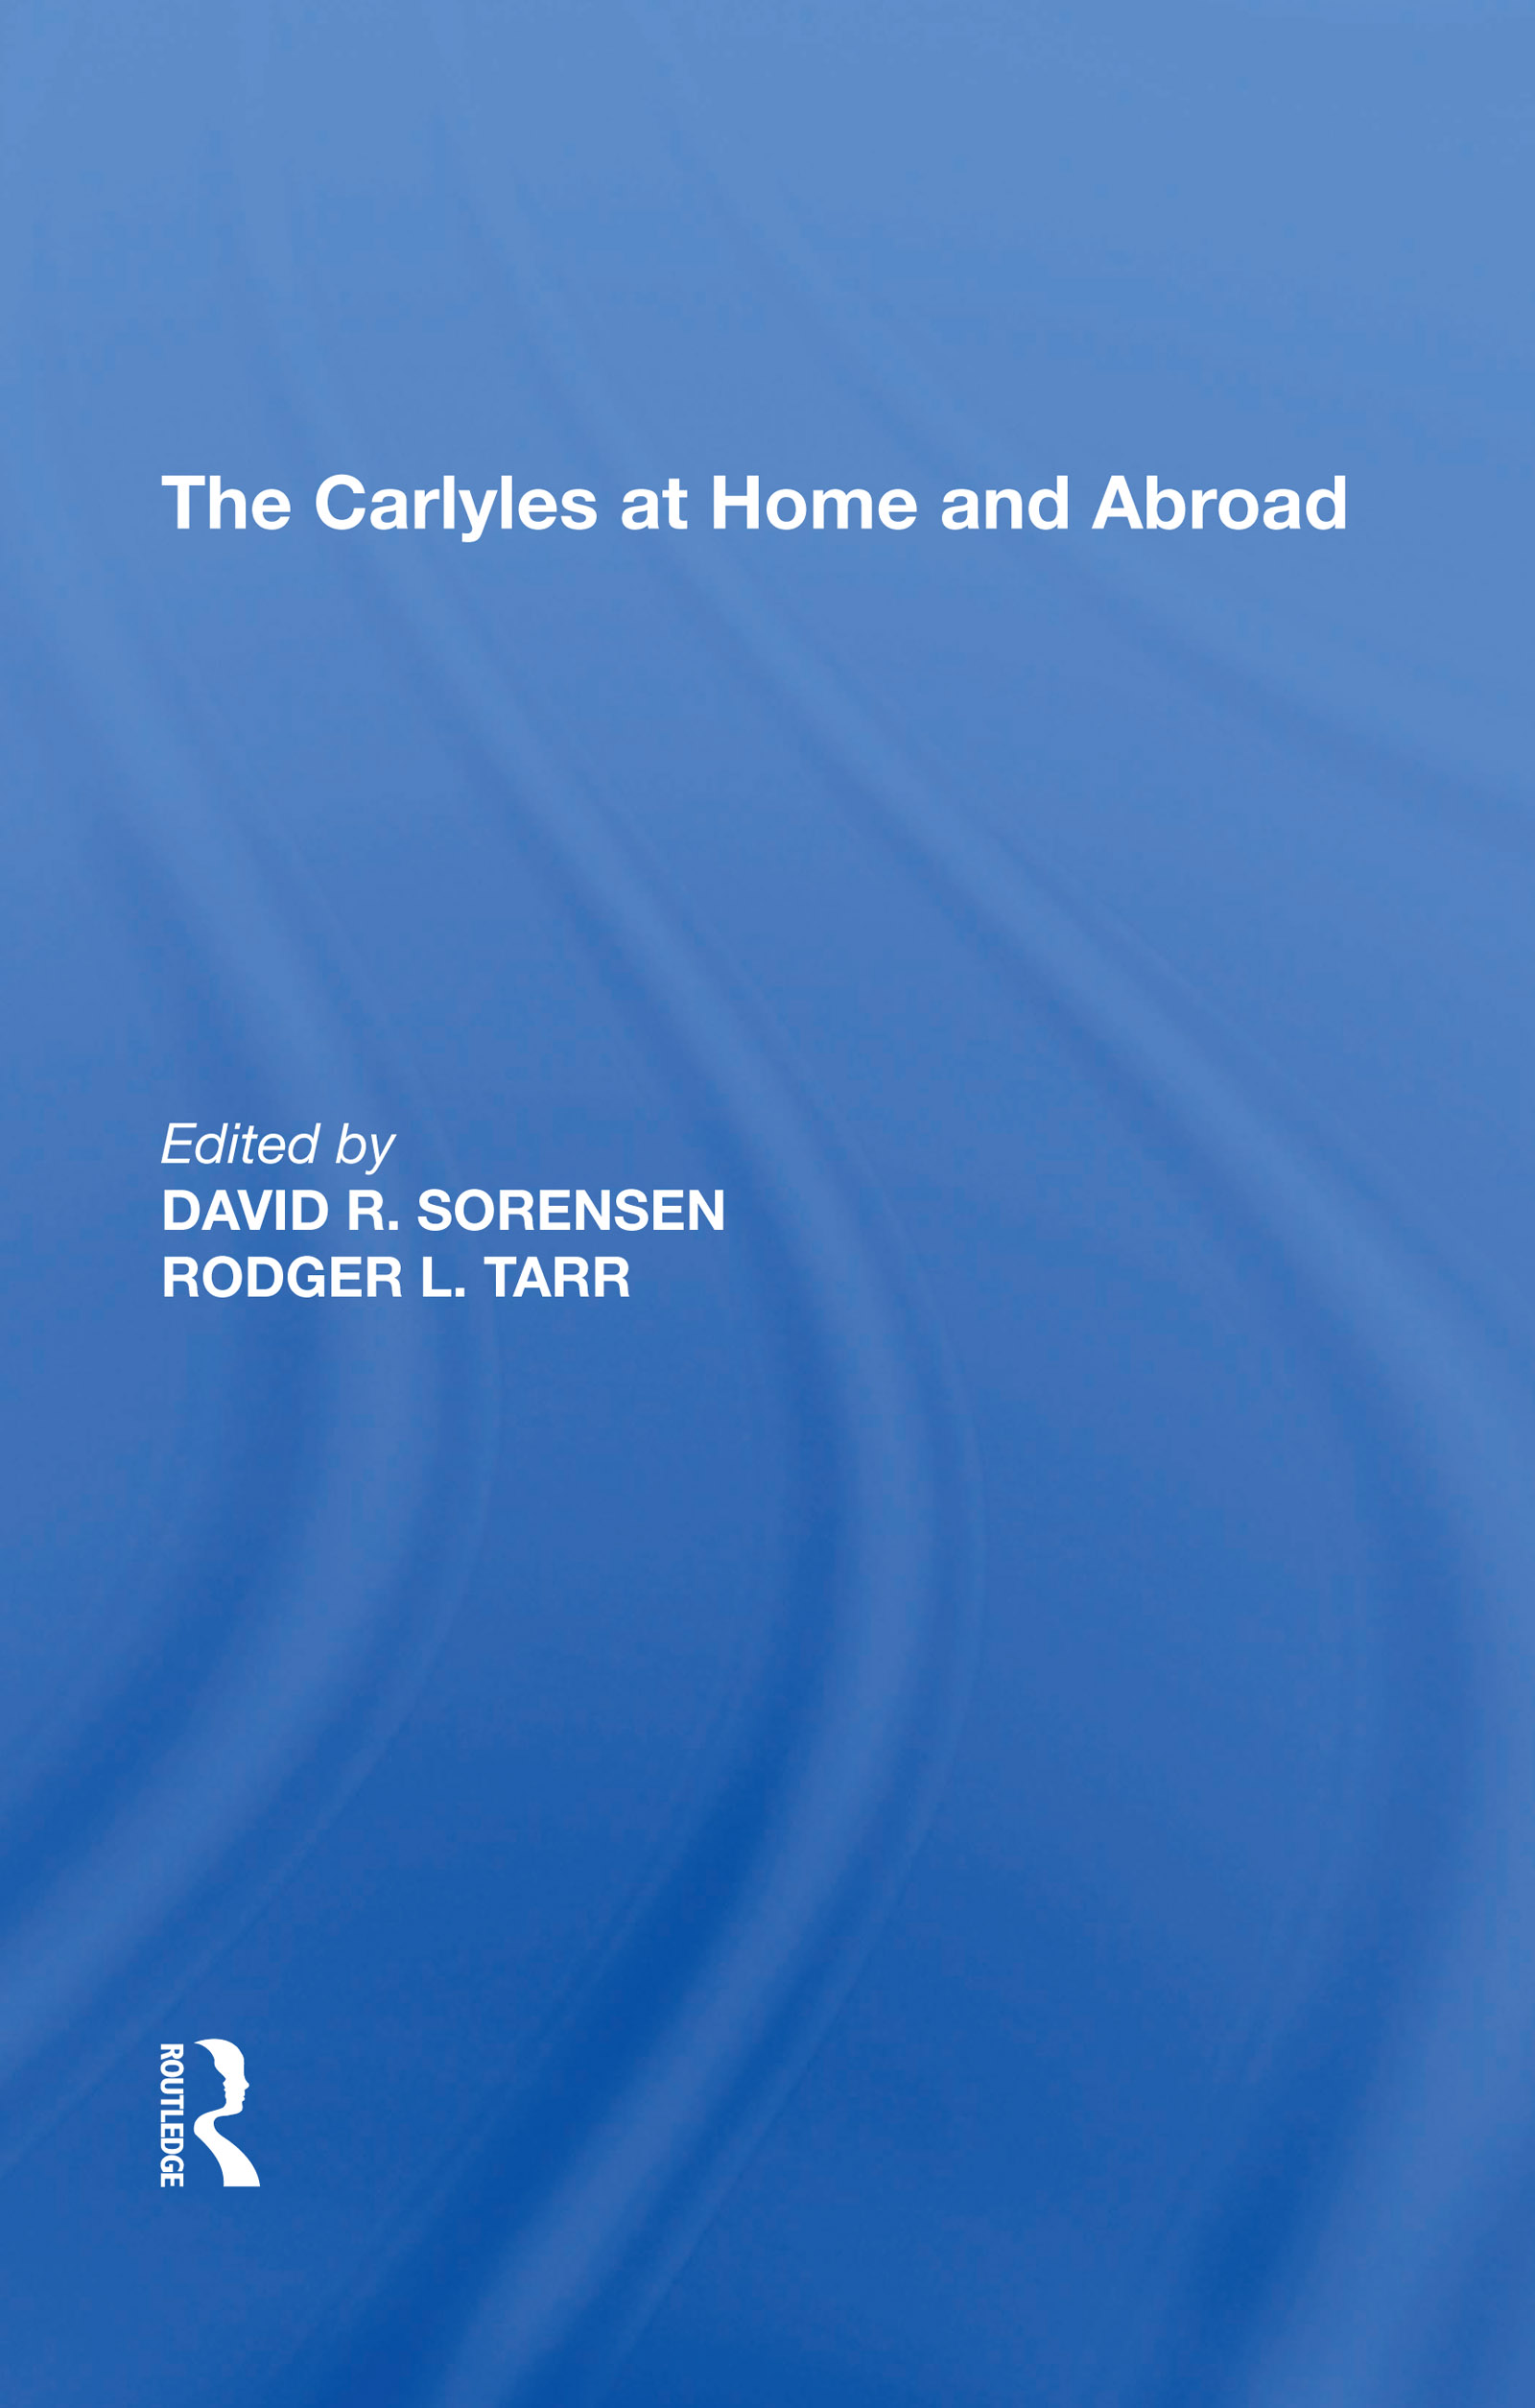 The Carlyles at Home and Abroad